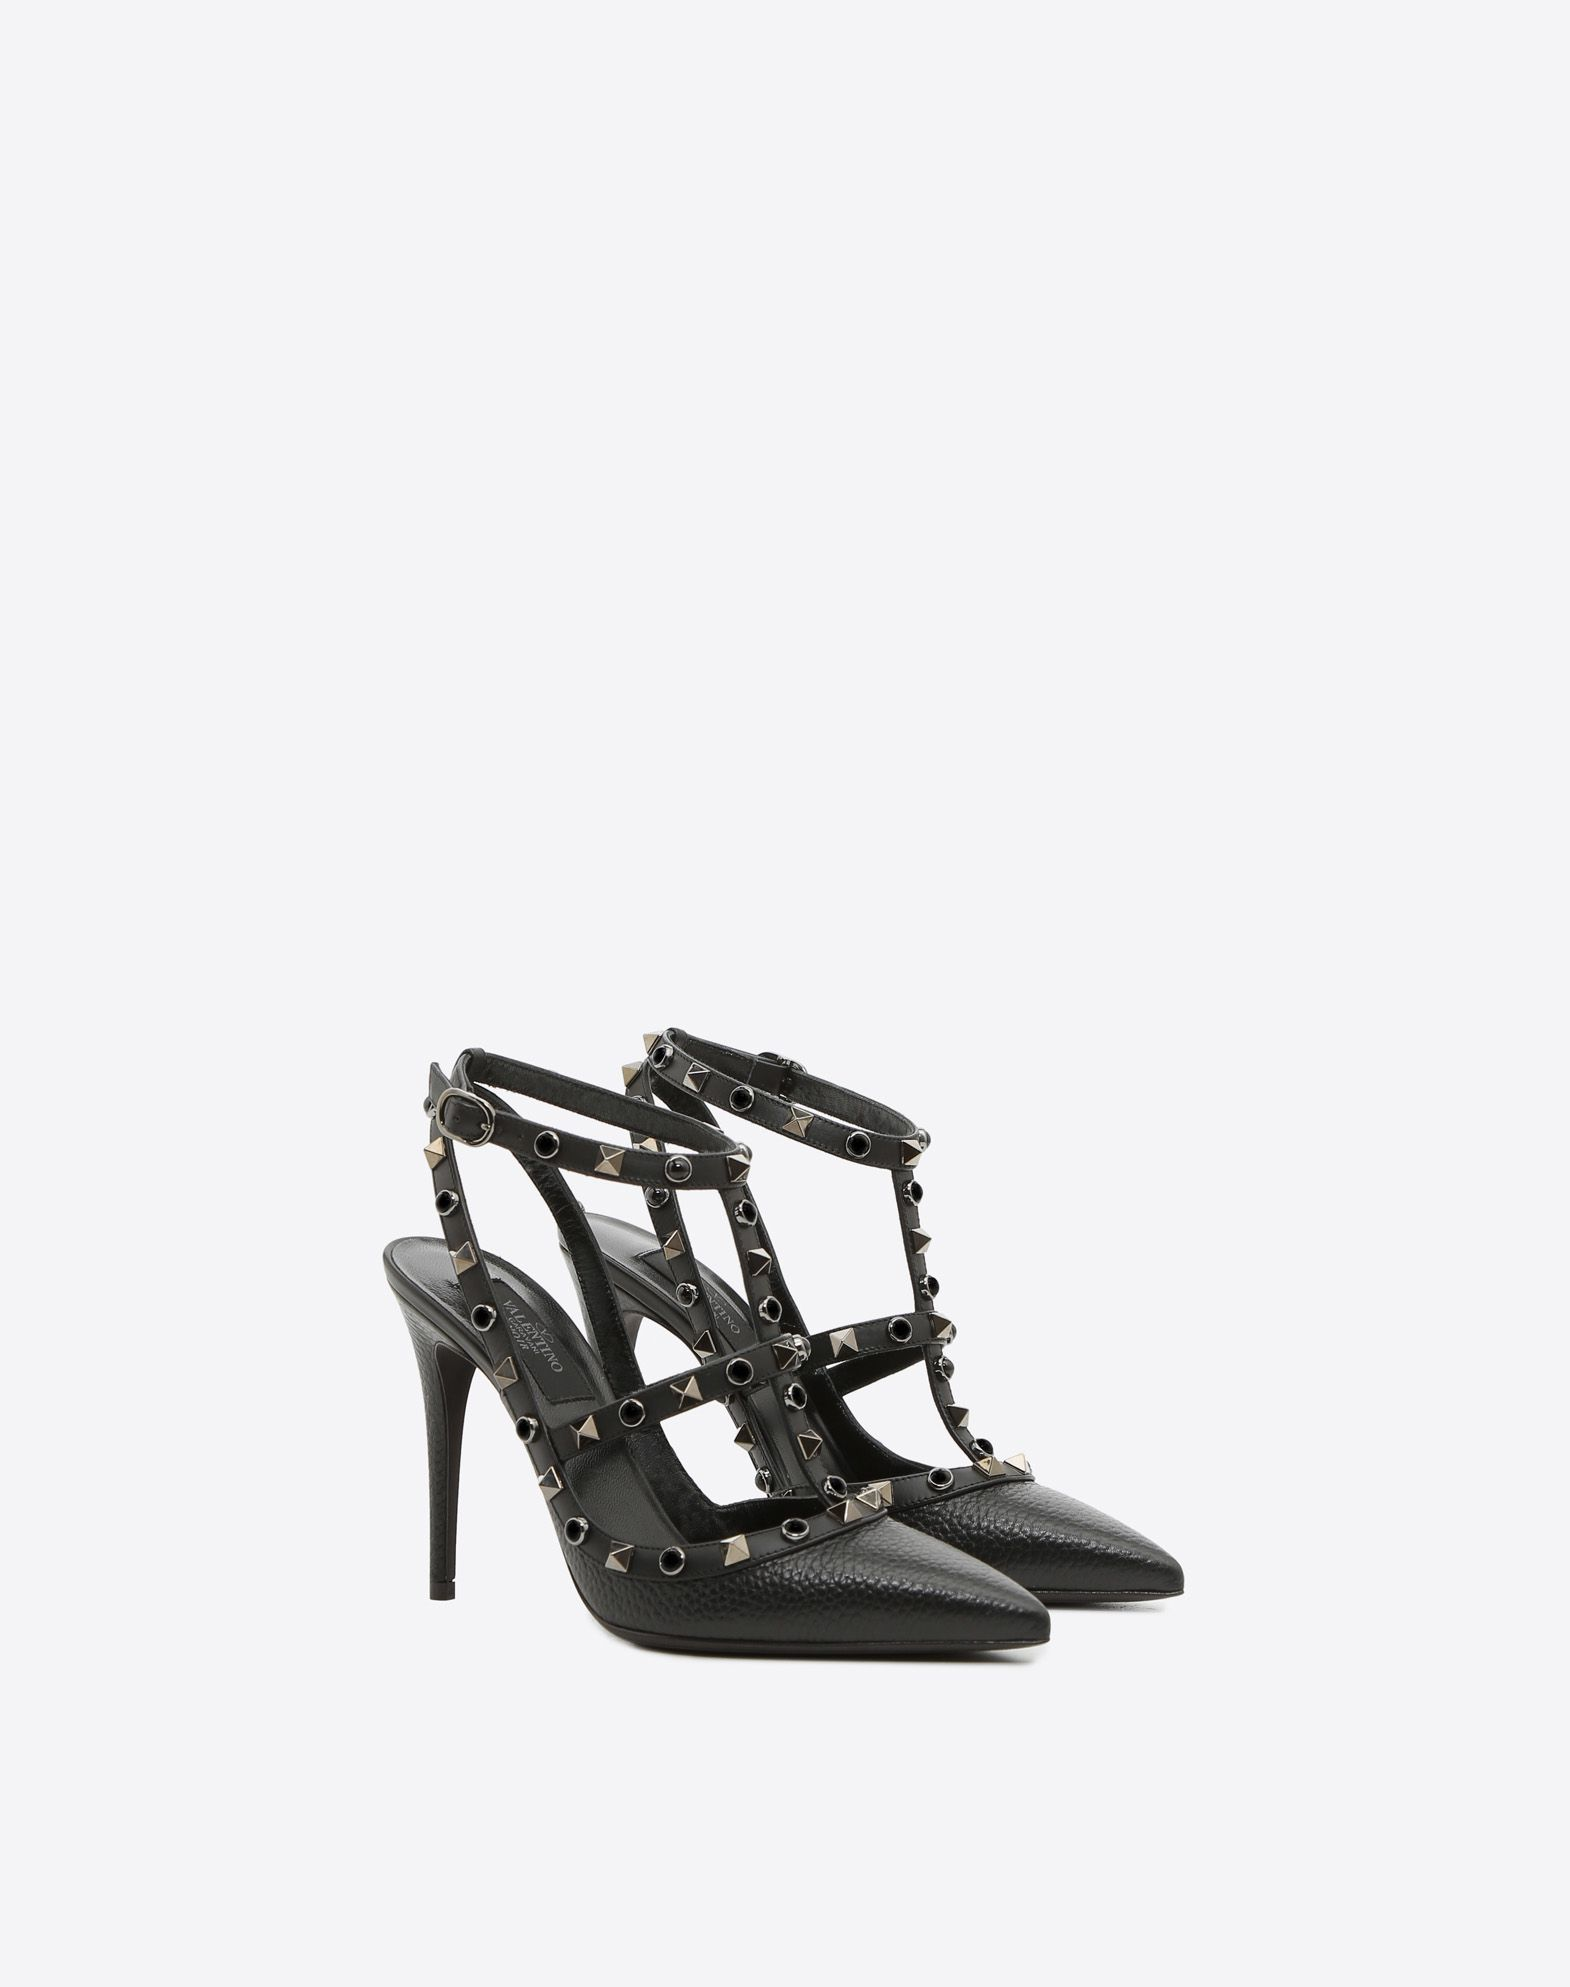 VALENTINO Spike heel Basic solid color Studs Buckle Narrow toeline Leather sole  45381132mx